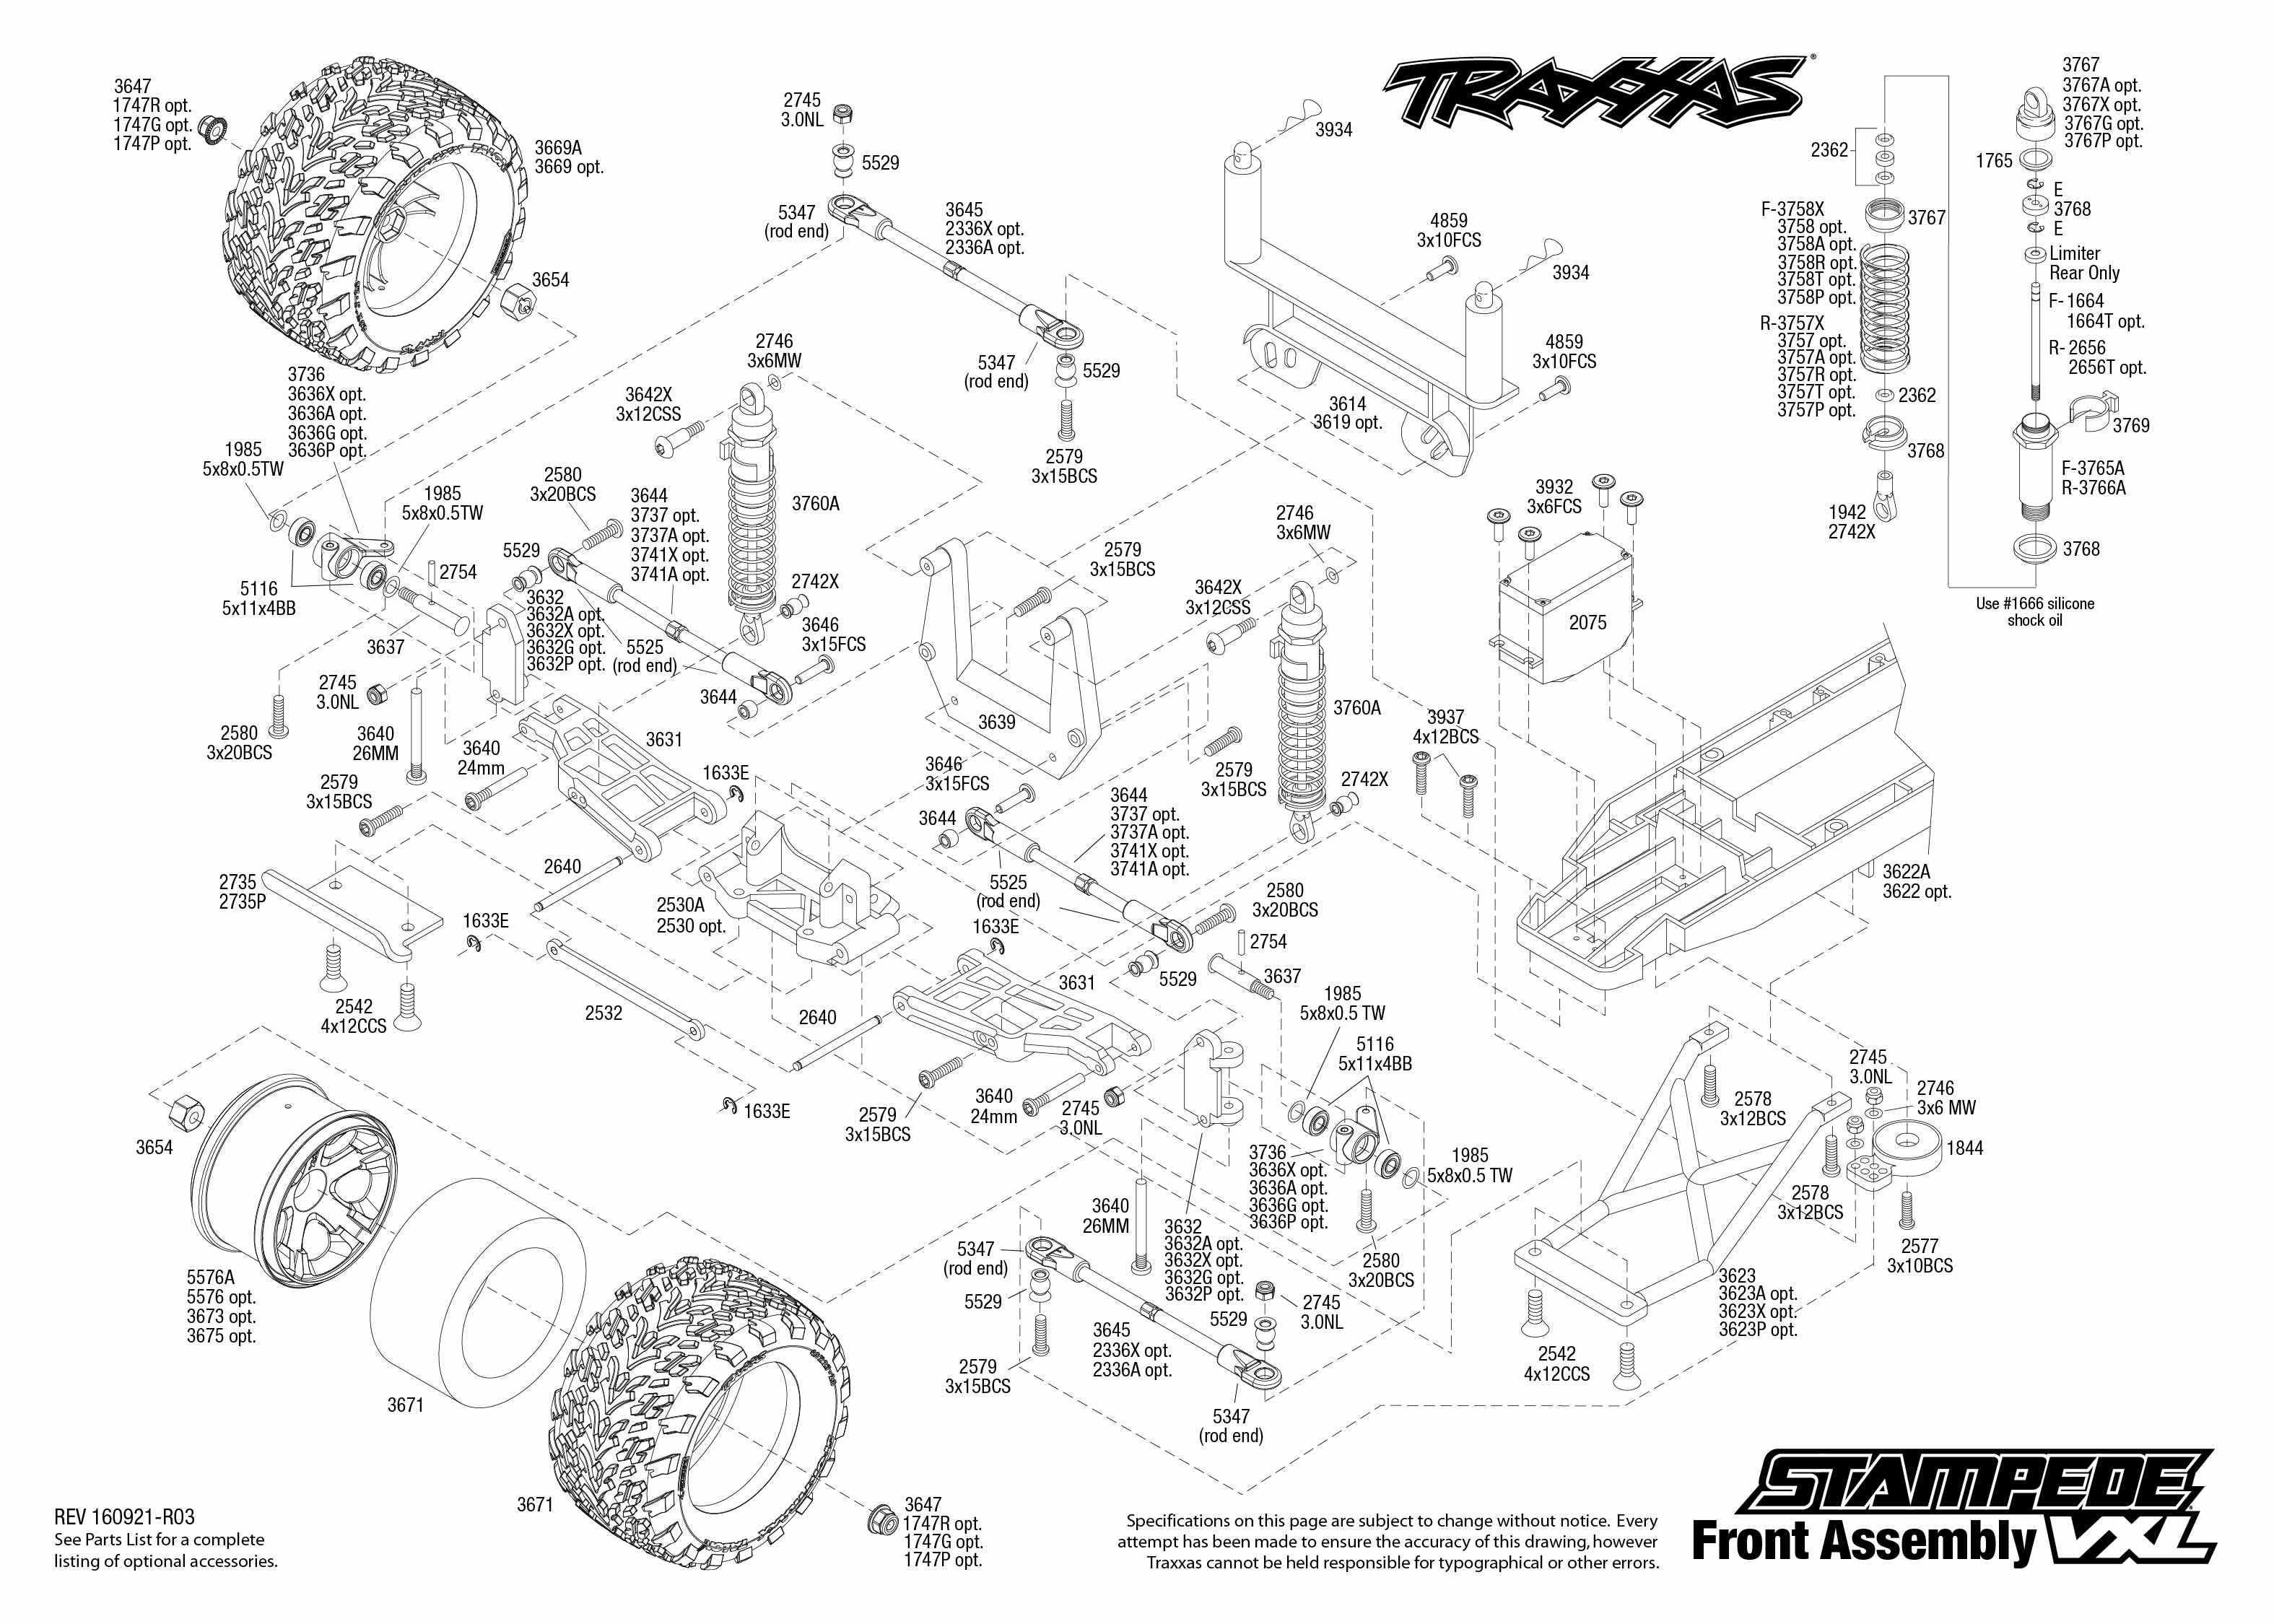 Traxxas Stampede Diagram Free Wiring For You 4x4 Vxl 1 10 Scale 4wd Brushless Monster Truck Exploded View Tqi Bluetooth Ready Tsm Rh Astramodel Cz Parts 2wd Transmission